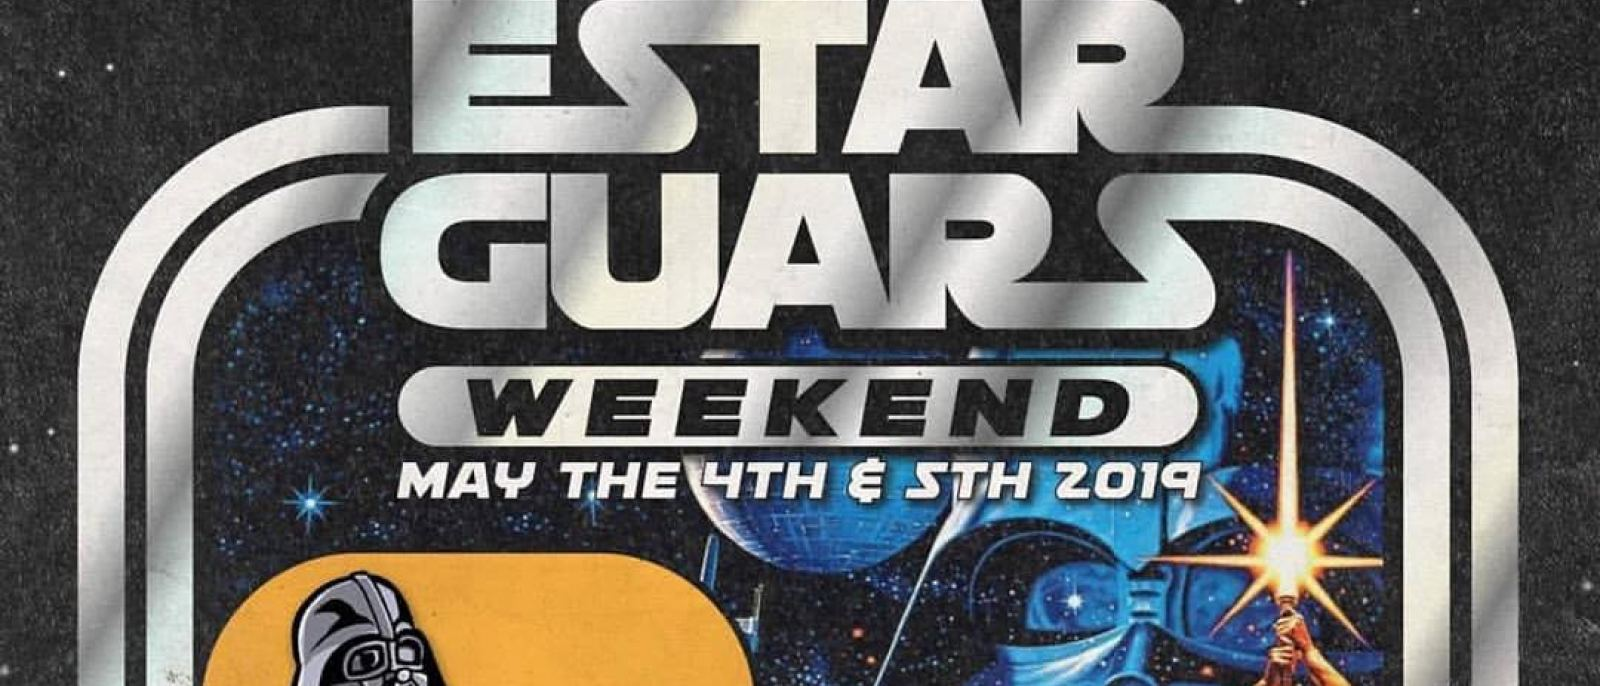 Here and Now Estar Guars Weekend